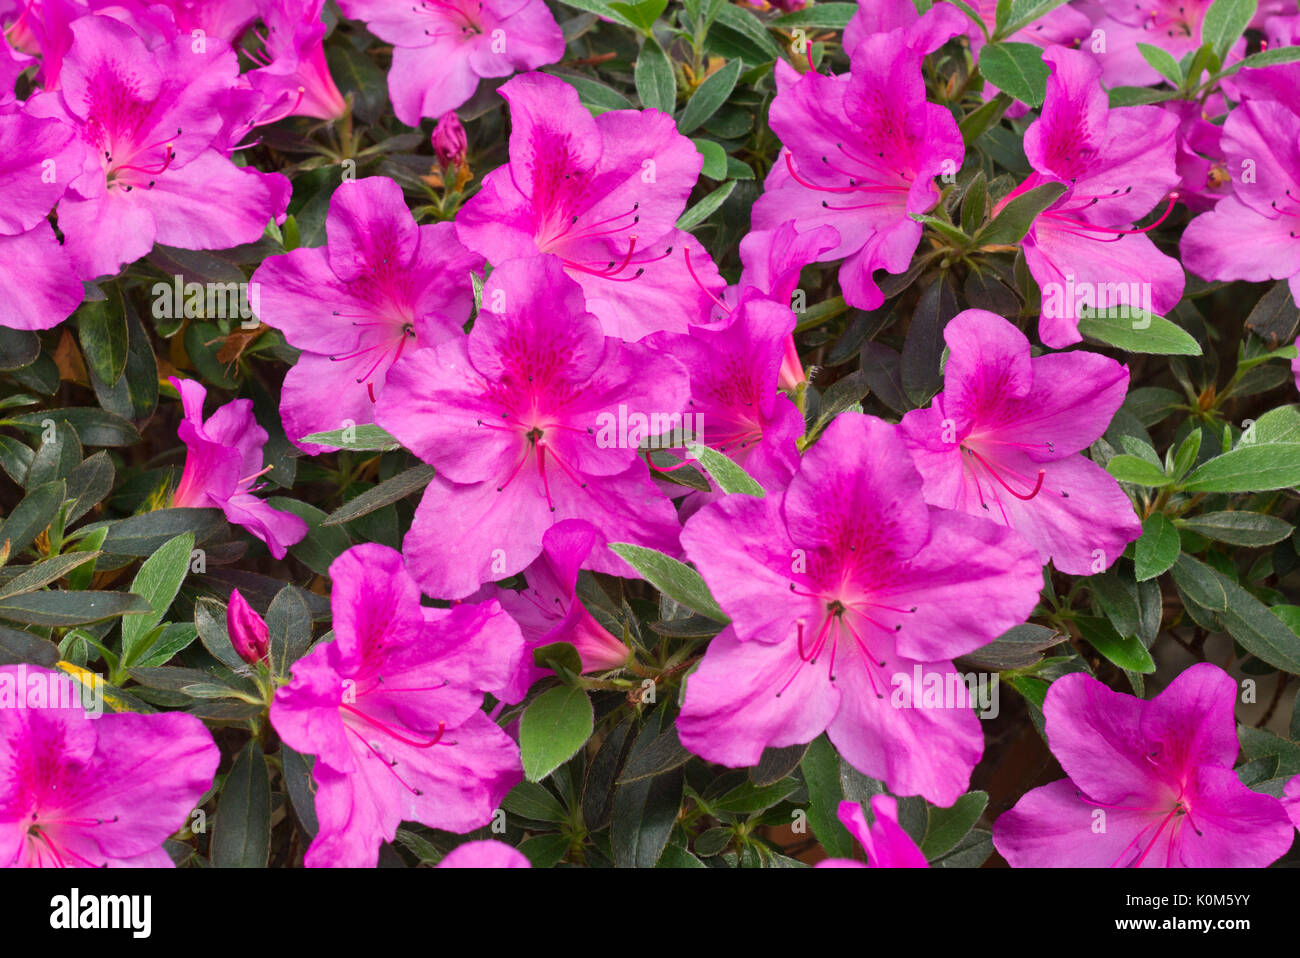 rhododendron simsii stock photos rhododendron simsii stock images alamy. Black Bedroom Furniture Sets. Home Design Ideas